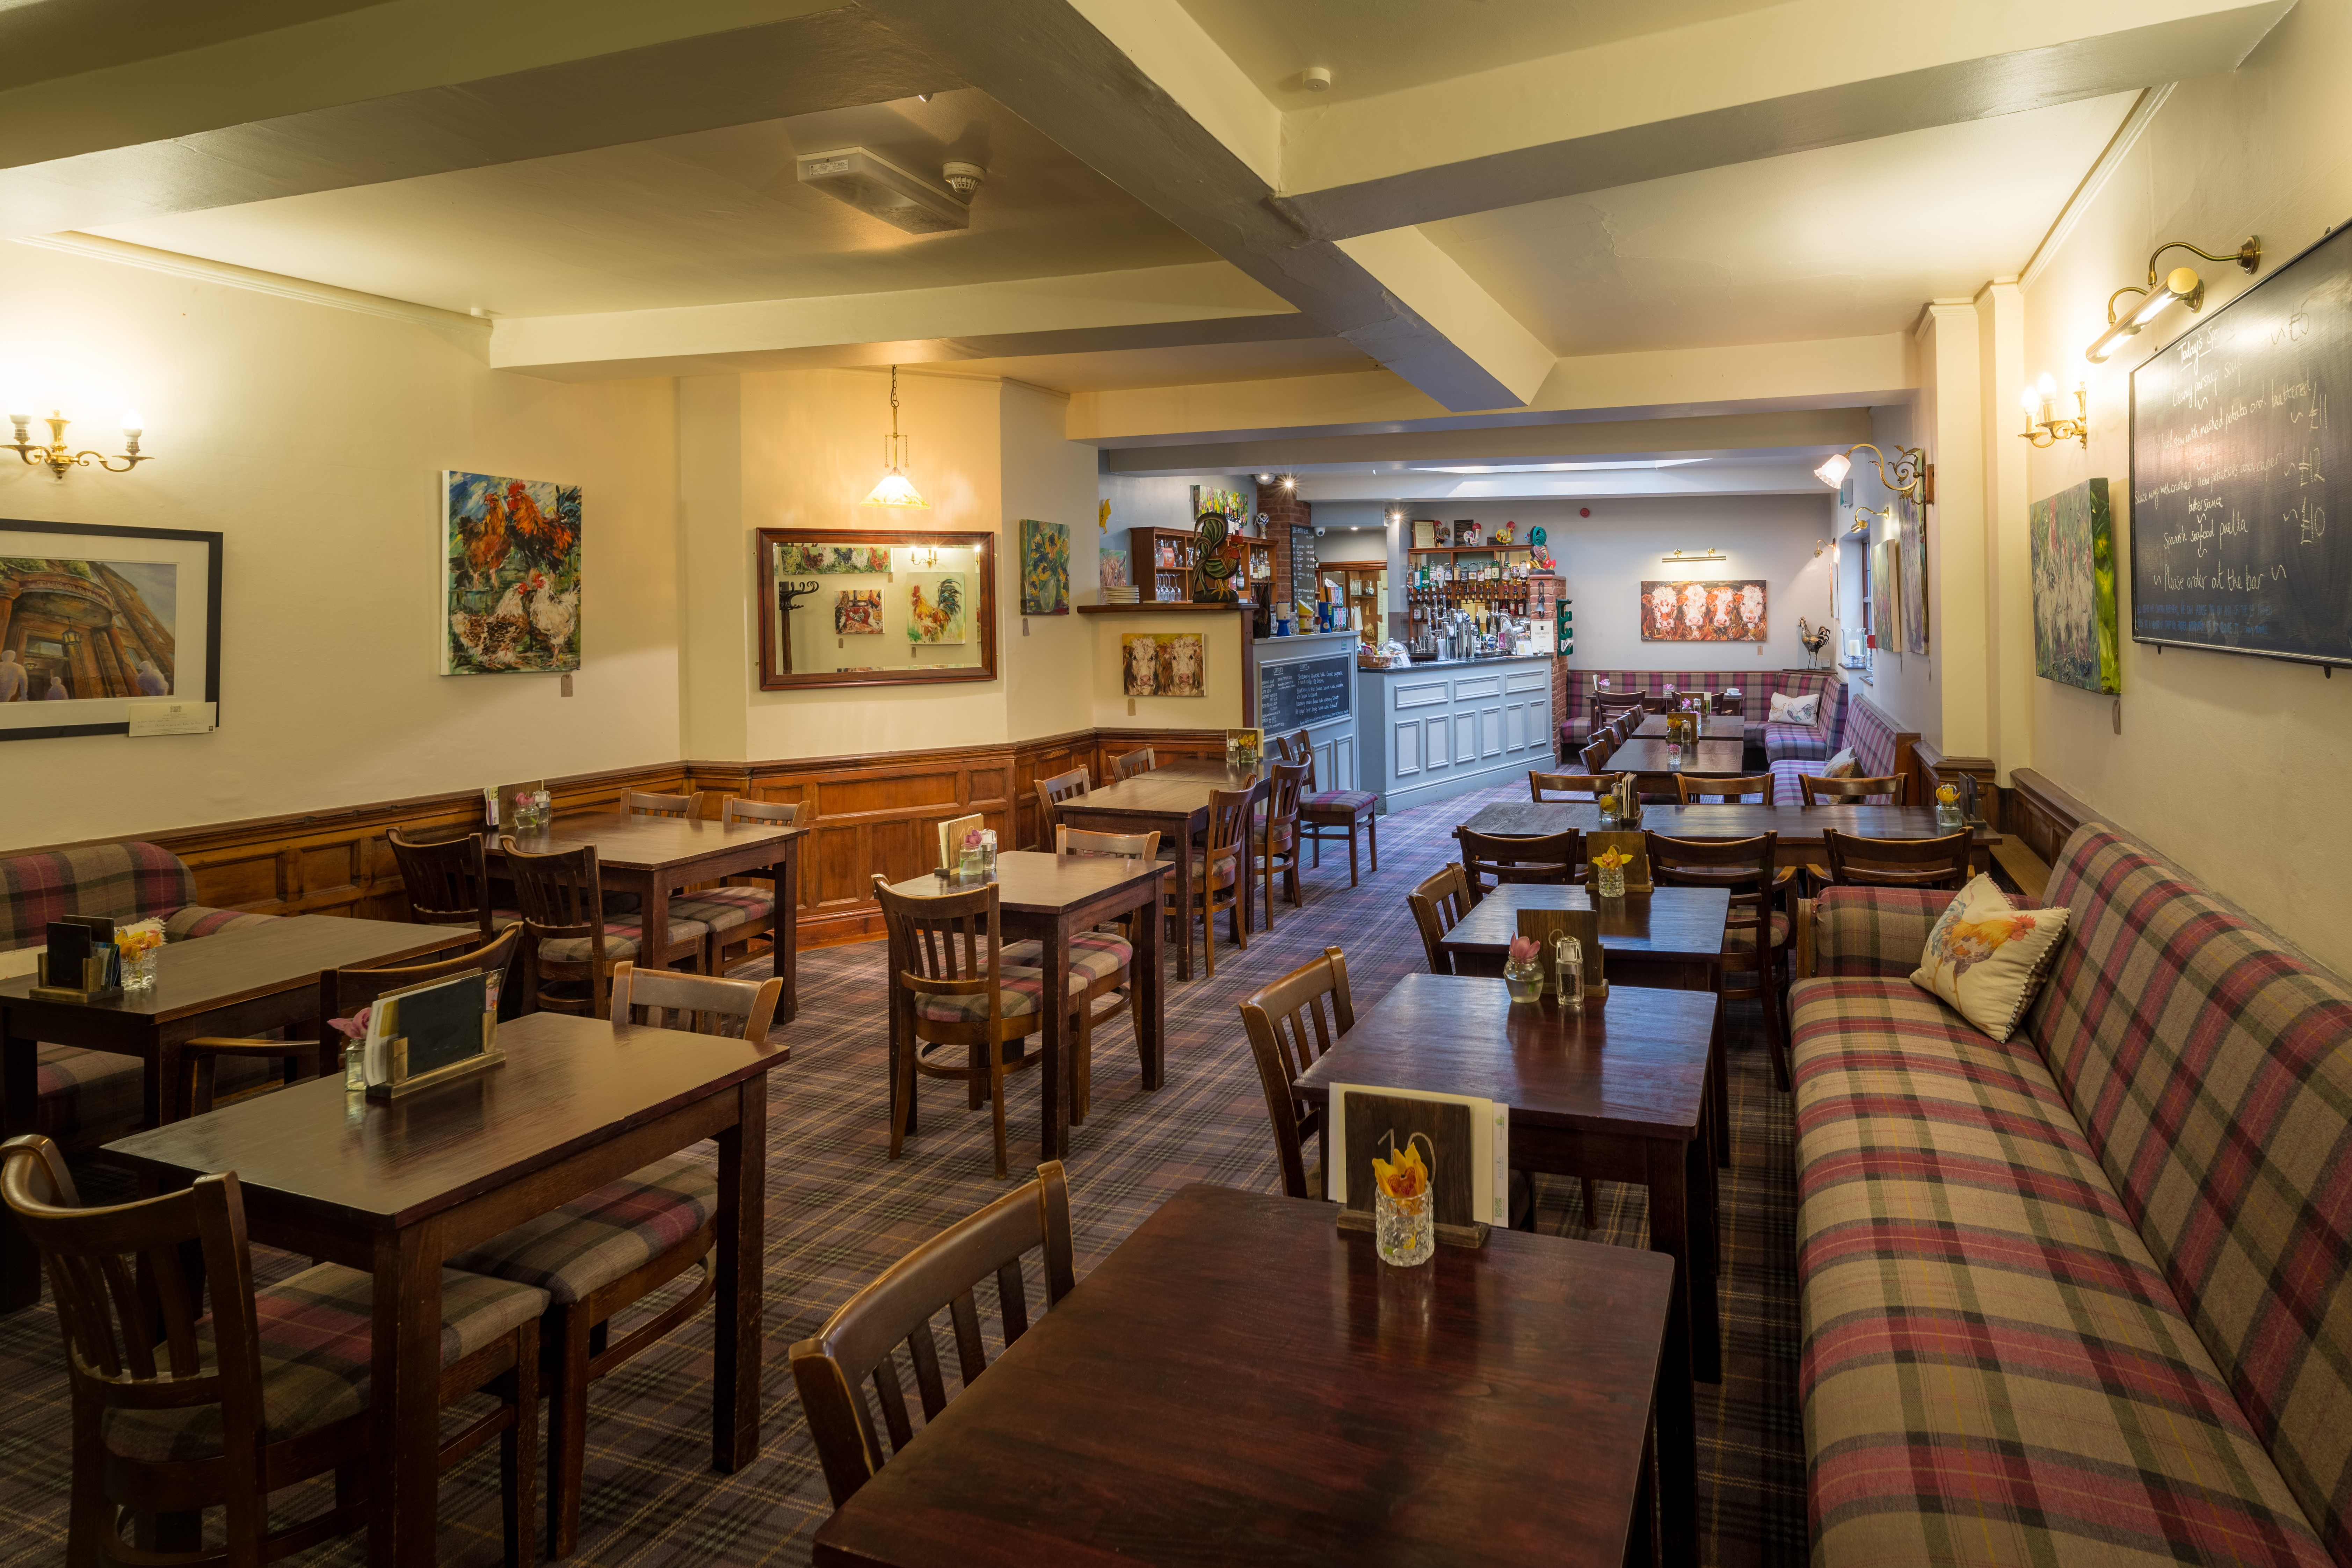 Cucina Restaurant Morley Old Hall Hotel Restaurant Buxton View Menu Reviews